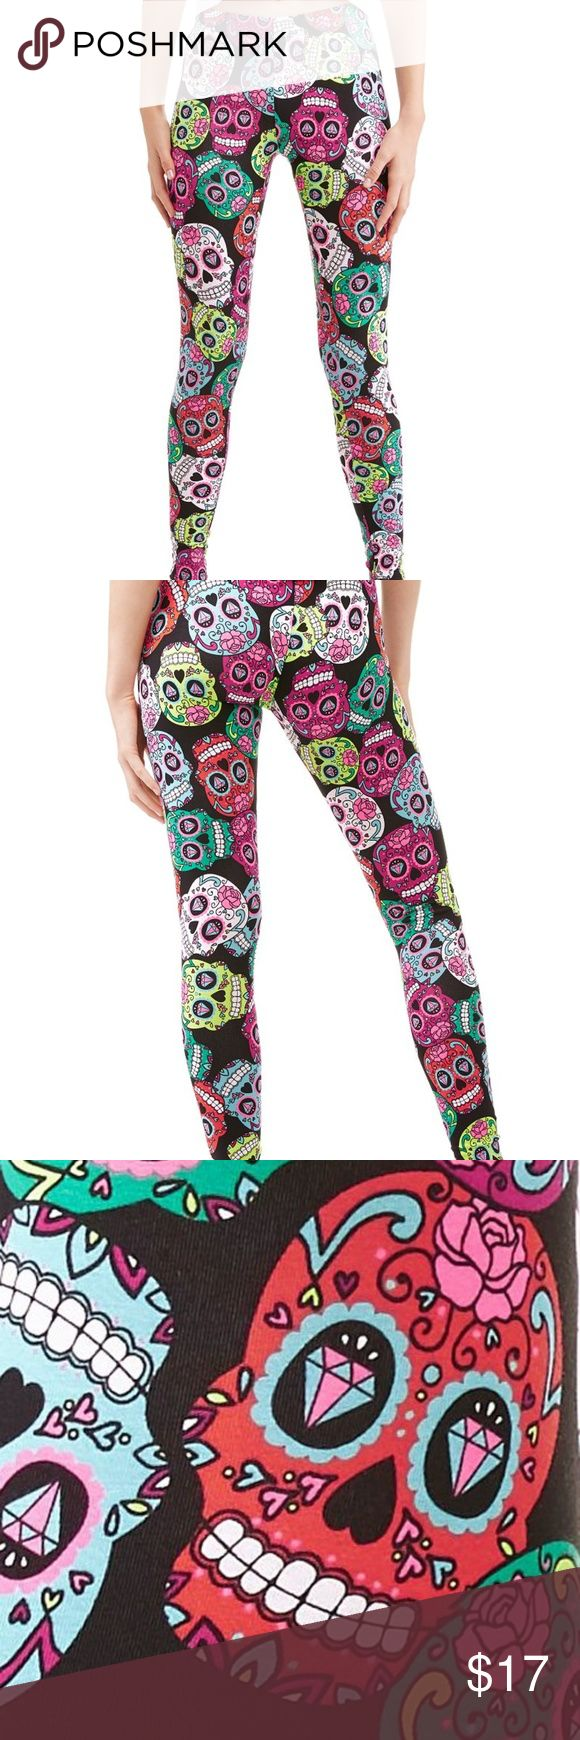 "NEW Sugar Skull Day Of The Dead Leggings XL 15-17 I love these leggings! They're so colorful. Made of 95% Cotton, 5% Spandex, so there's lots of stretch. Colors are black background with multi bright colors of pink, fuchsia, aqua, teal, yellow and white. Beautiful combination that really works. Perfect for Halloween! I'm keeping a pair for myself and these will be my ""costume"" this year! Size XL (15-17) NOBO Pants Leggings"